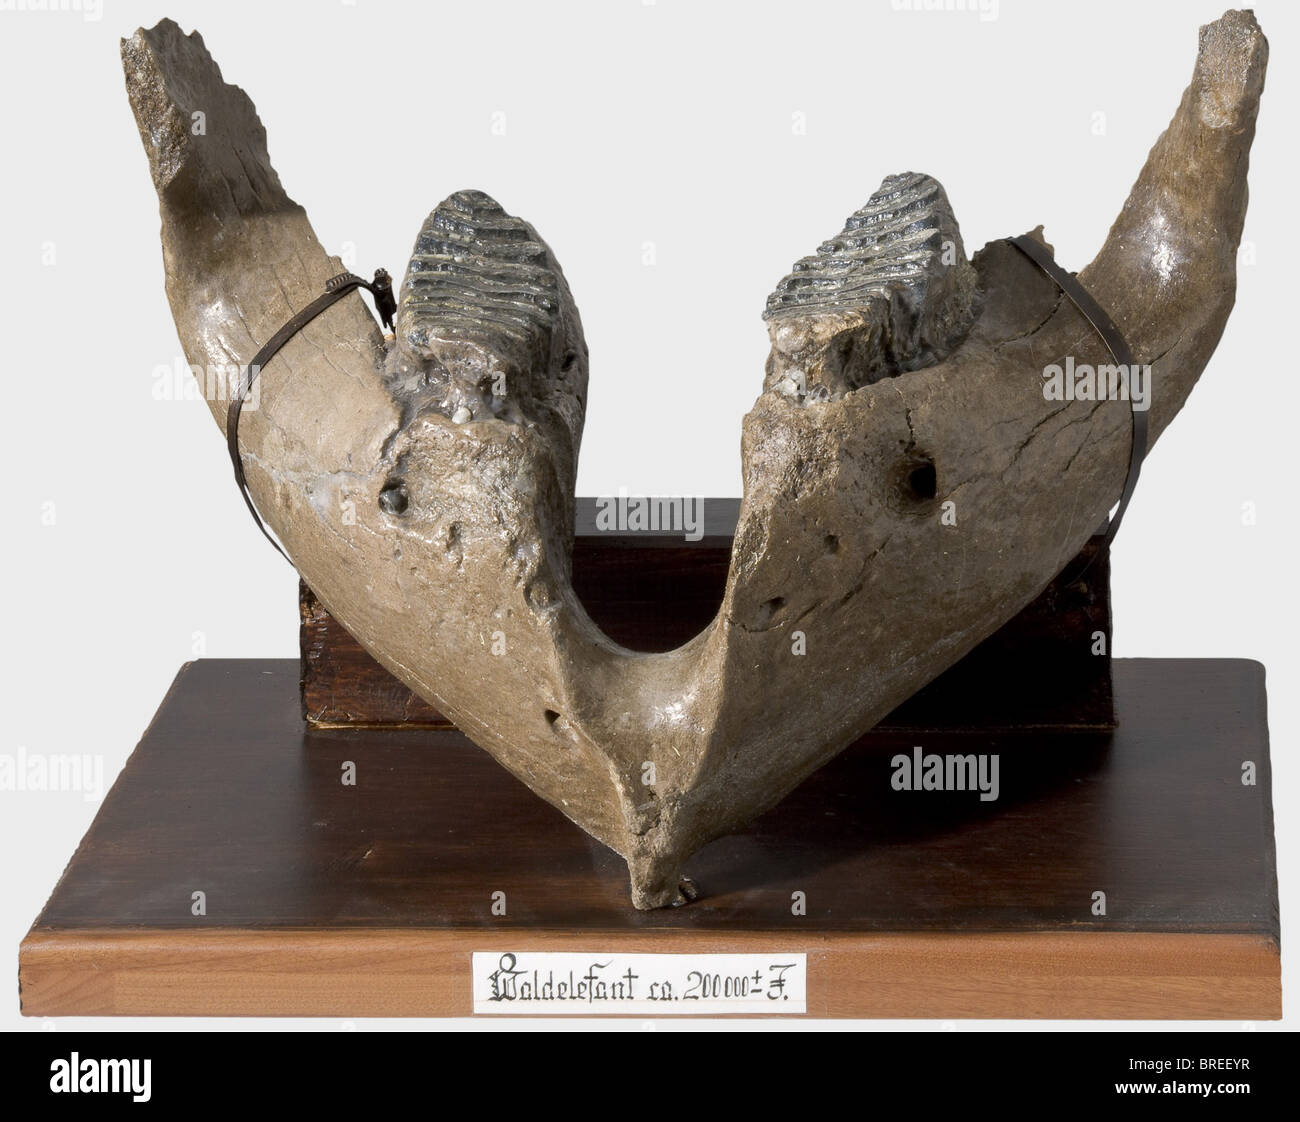 A lower jaw of a Central European straight-tusked elephant, ca. 200,000 years old Sturdy lower jaw of a straight - Stock Image